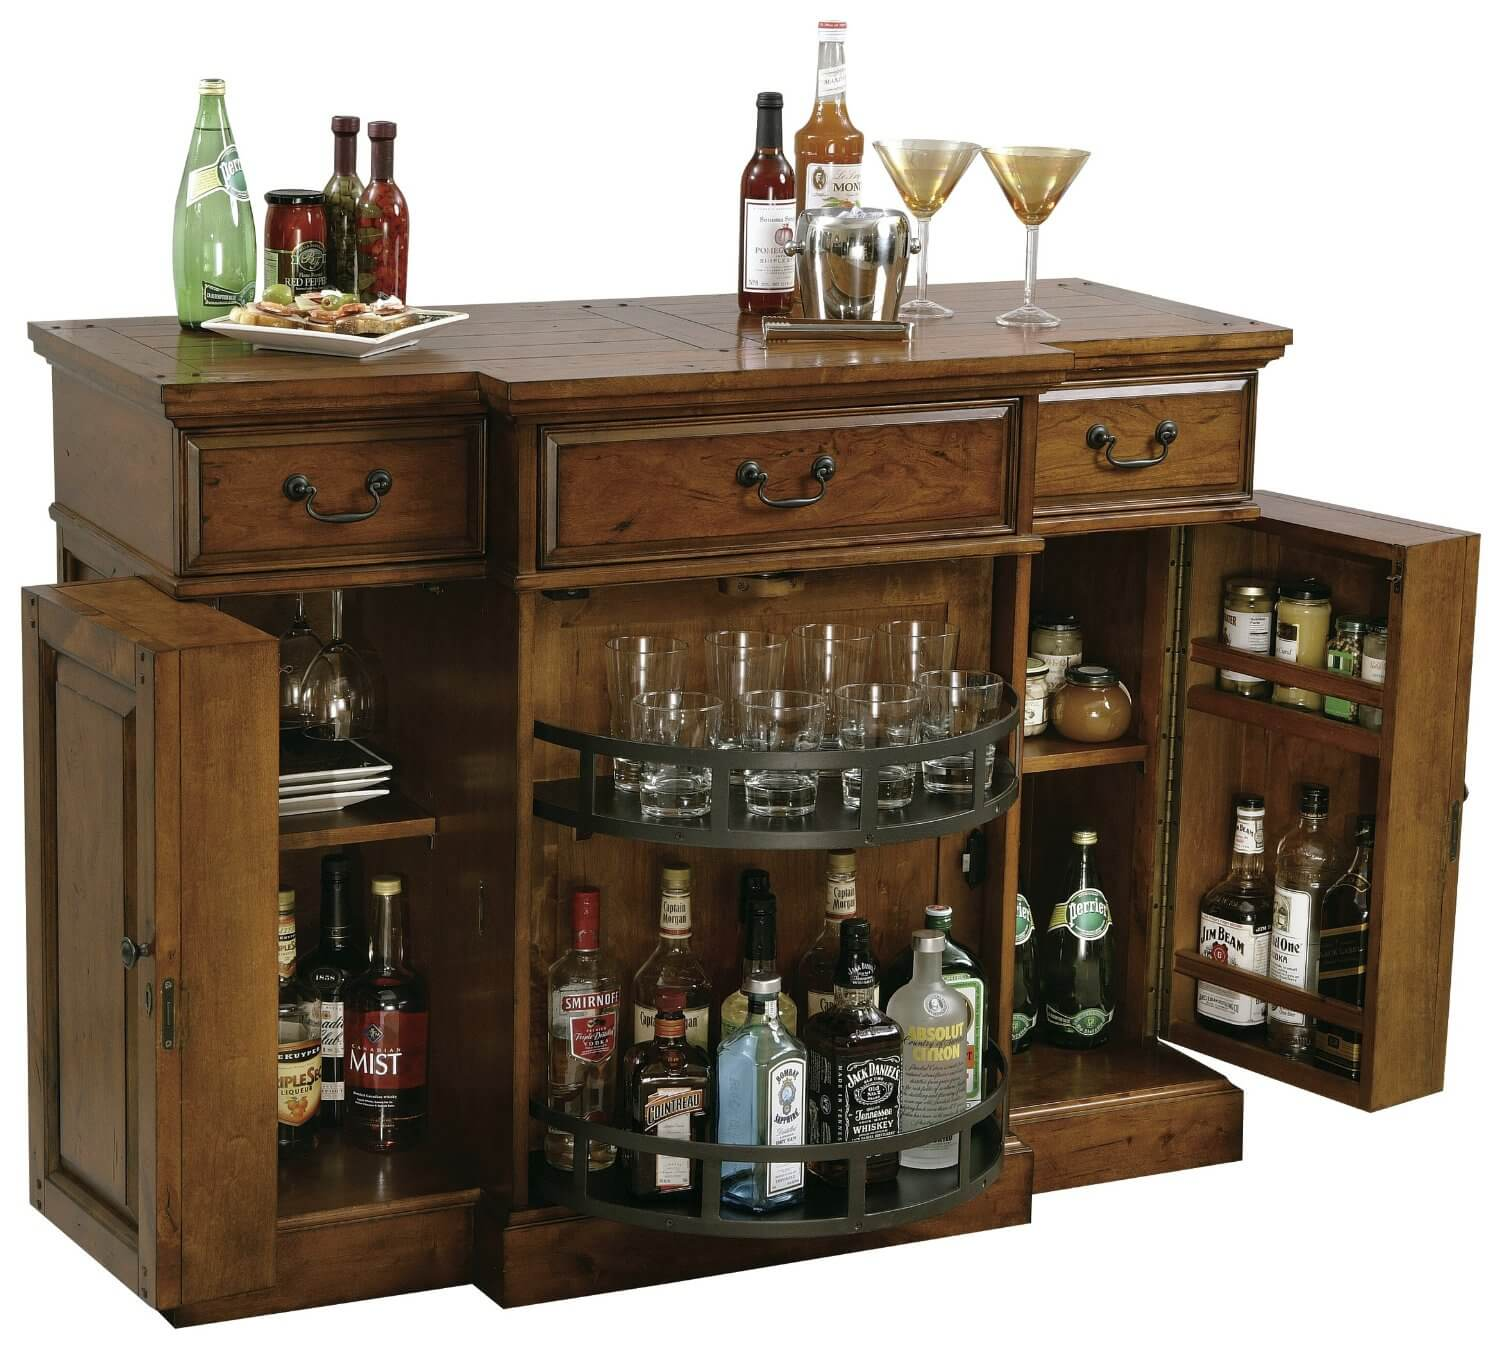 Wine and liquor serving cabinet